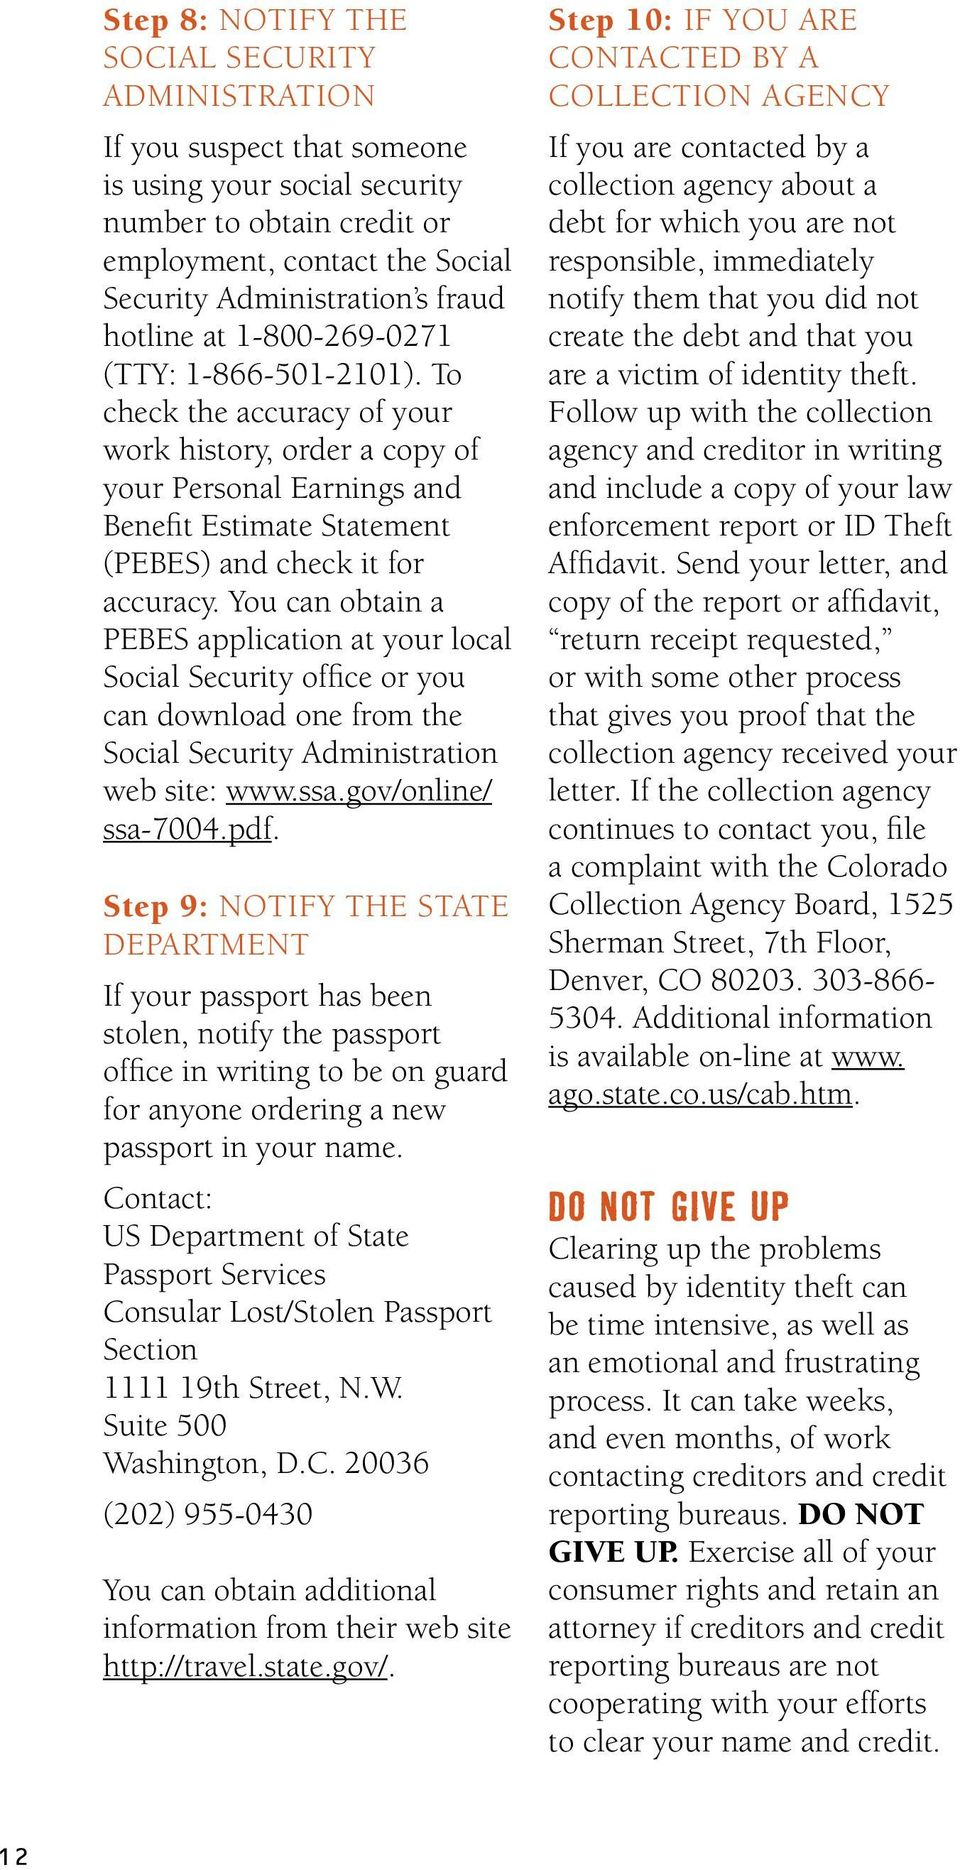 You can obtain a PEBES application at your local Social Security office or you can download one from the Social Security Administration web site: www.ssa.gov/online/ ssa-7004.pdf.